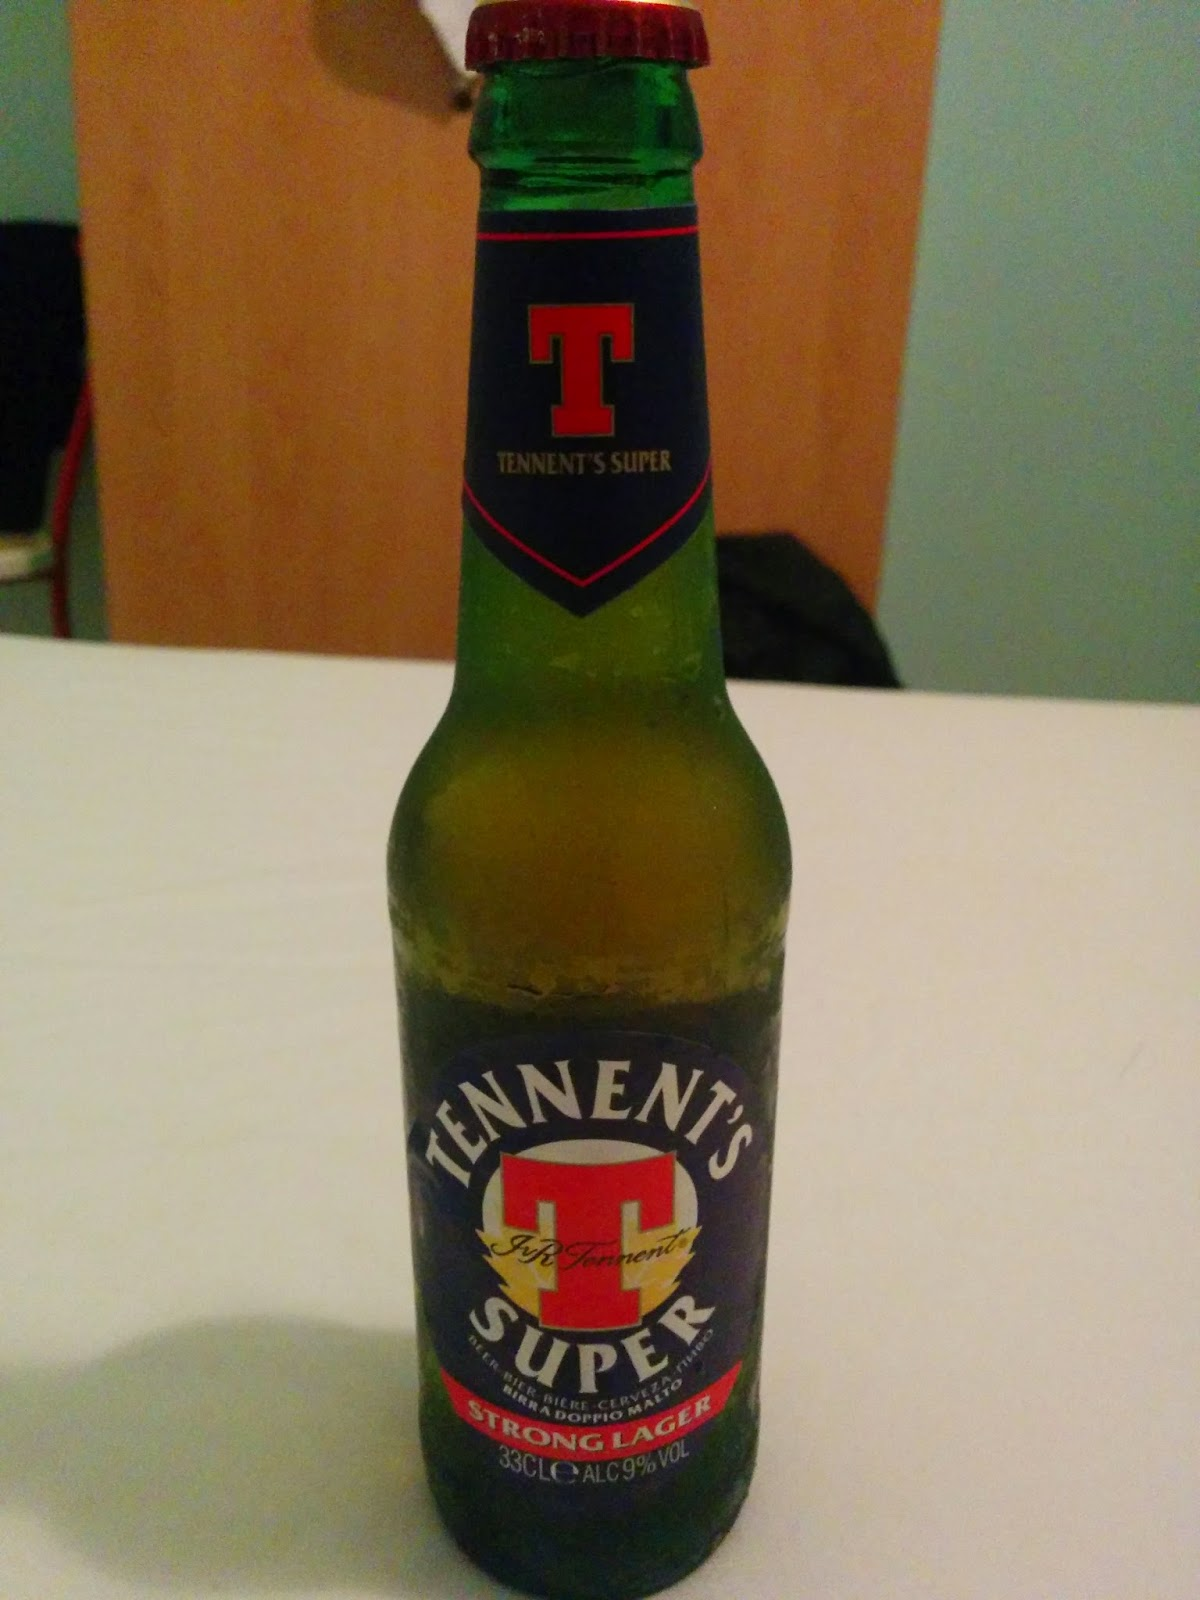 1740 scotland - It S Brewed By Wellpark Brewery A Scottish Brewery Located In Glasgow The Brewery Was Founded In 1740 And Is Currently